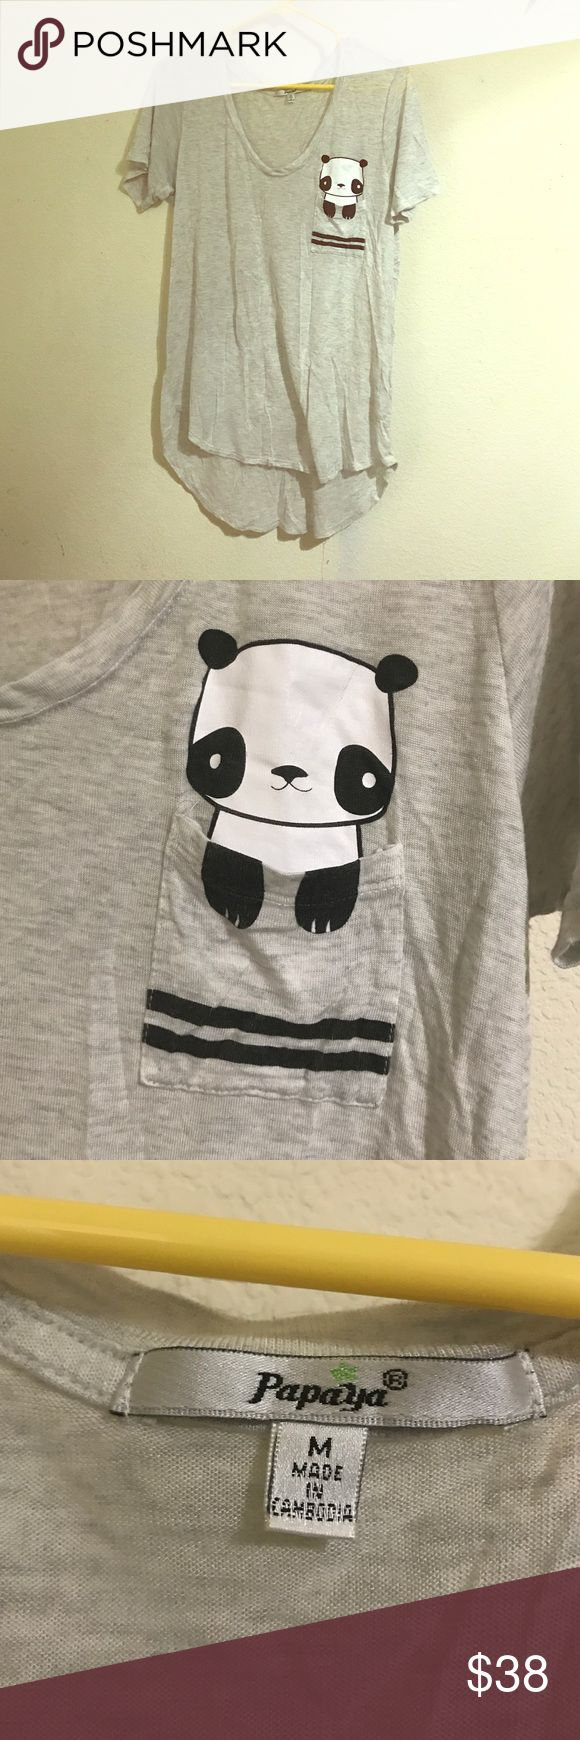 Cute Panda Loose T-shirt Loose gray t-shirt with panda detail on the pocket. Papaya Clothing  Tops Tees - Short Sleeve